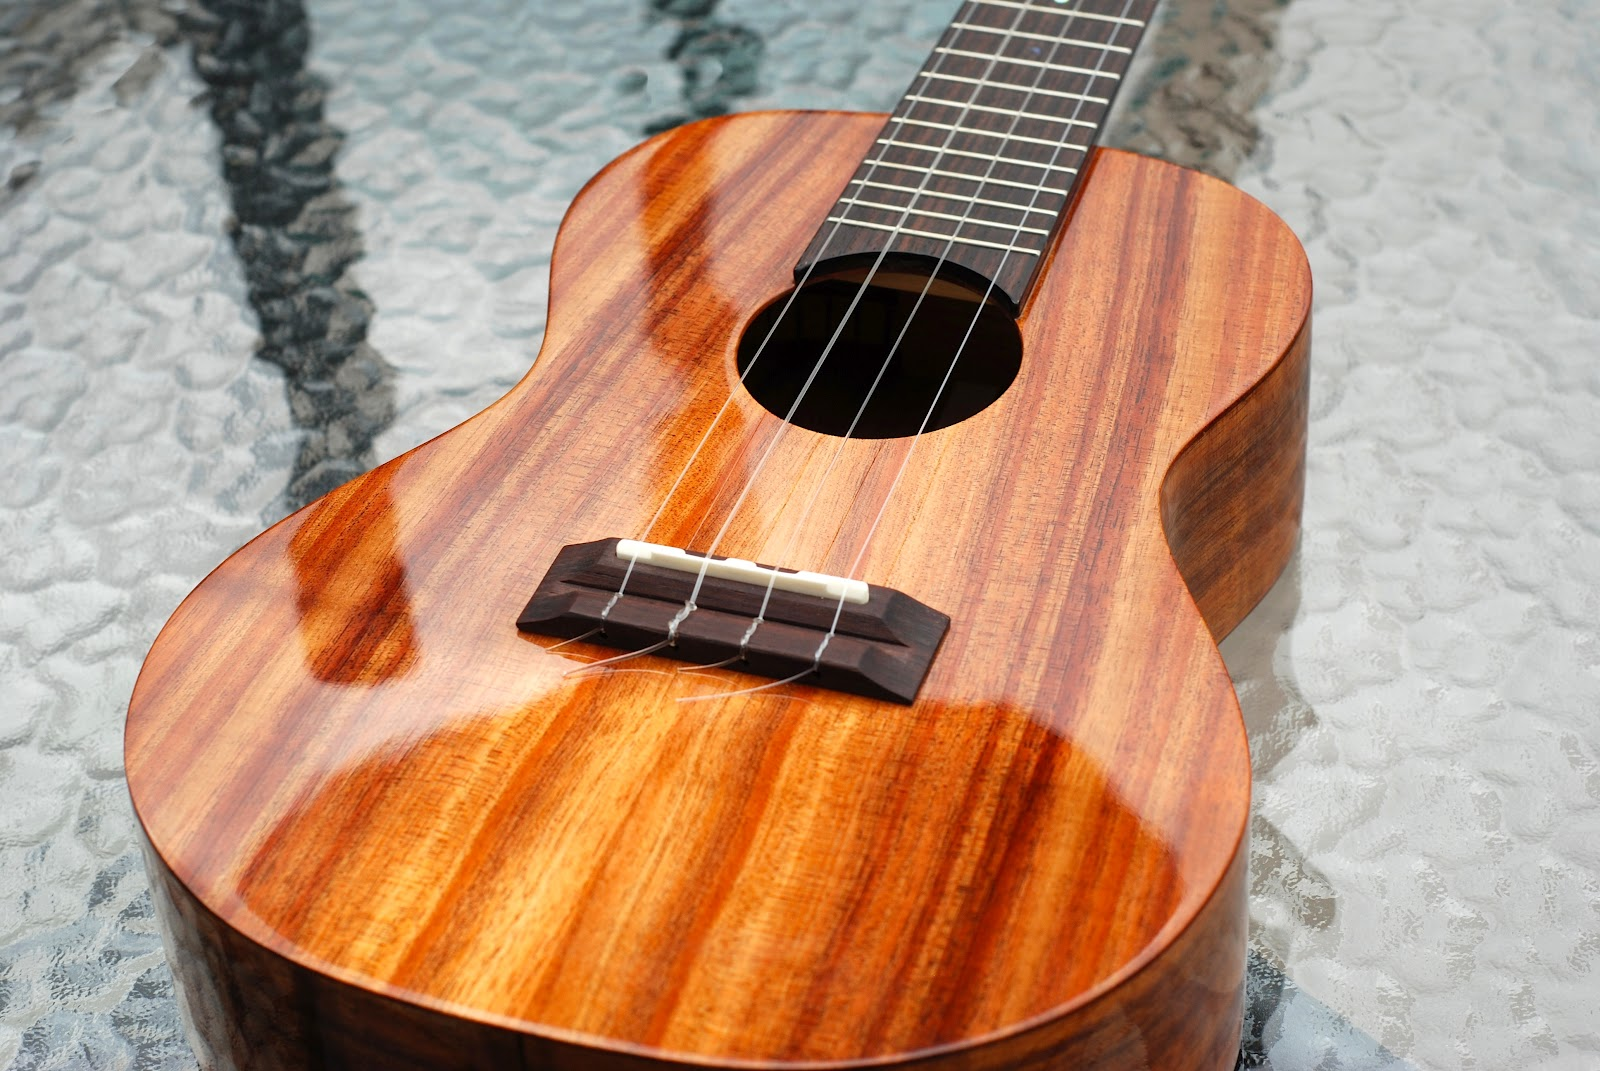 Big Island Concert Ukulele Review